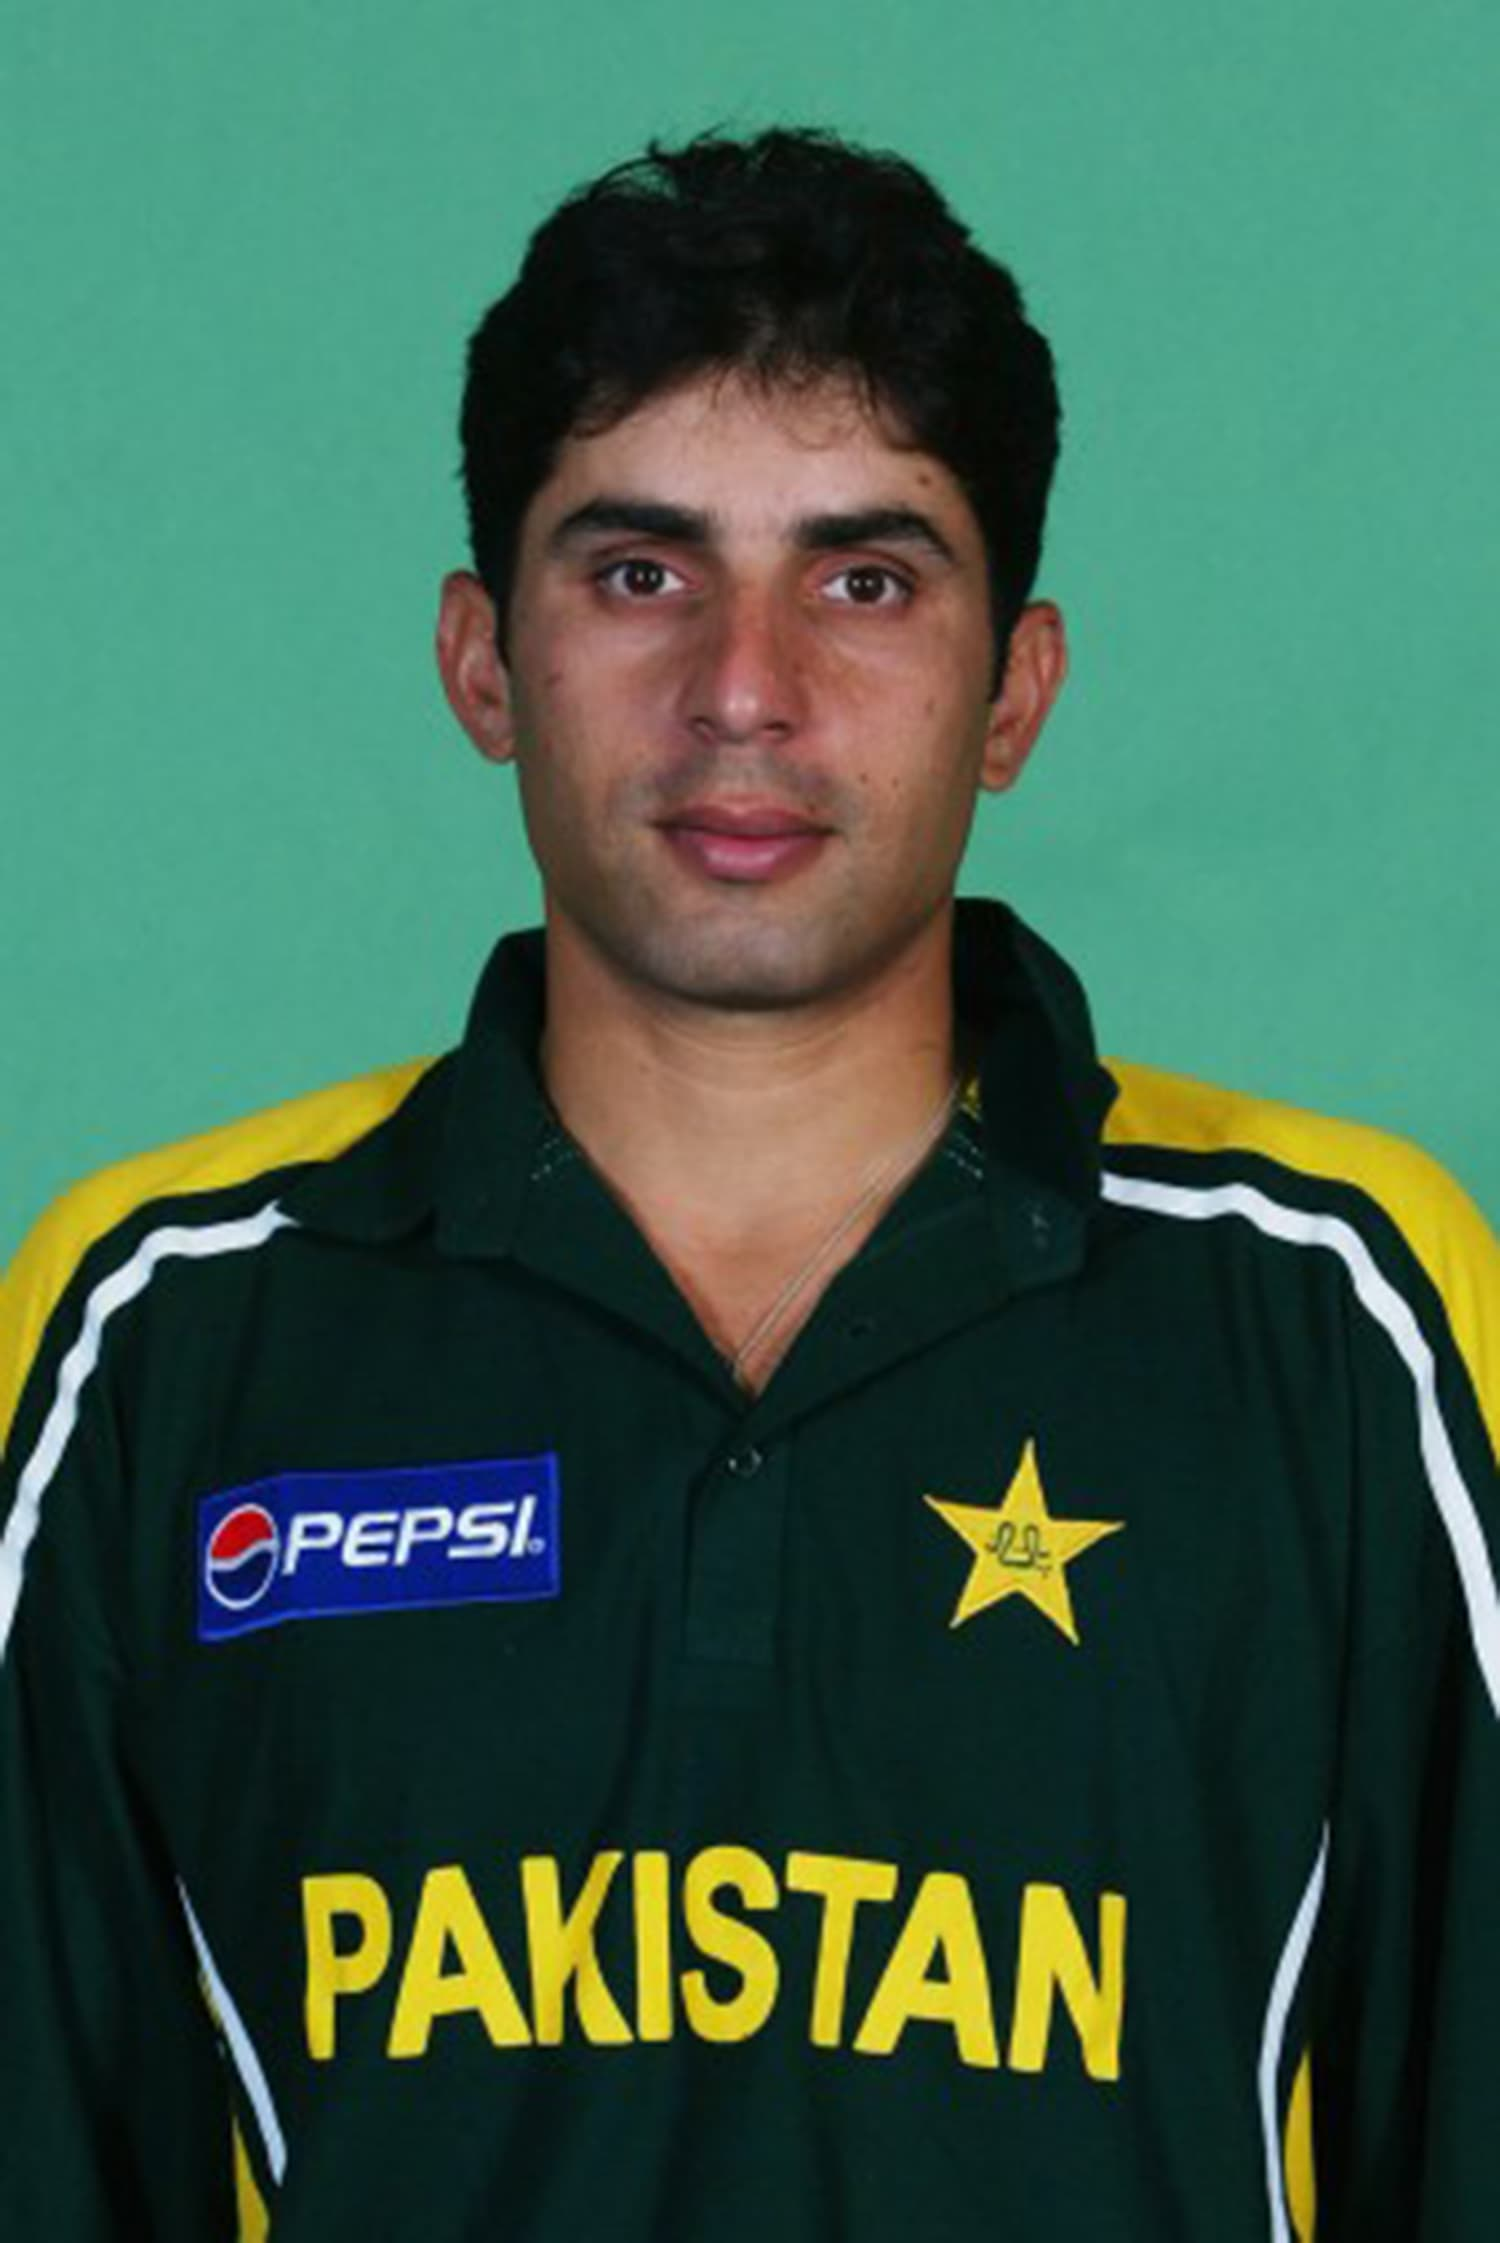 Misbah in 2002. He had made his Test debut in 2001 and ODI debut in 2002. — Photo: Cricket Archive